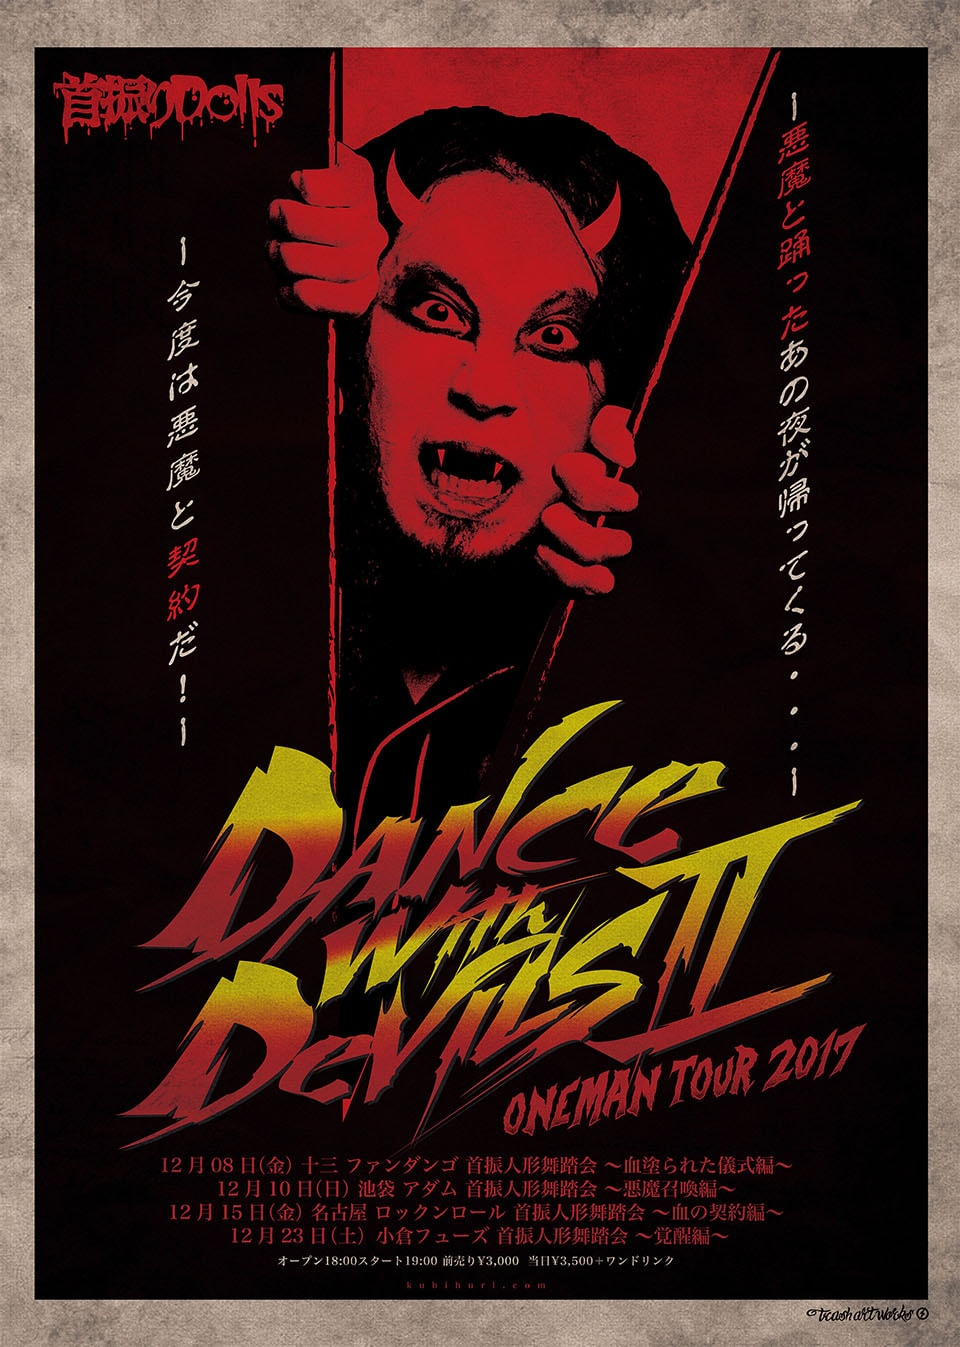 DANCE with DEViLS 2 ONEMAN TOUR 2017